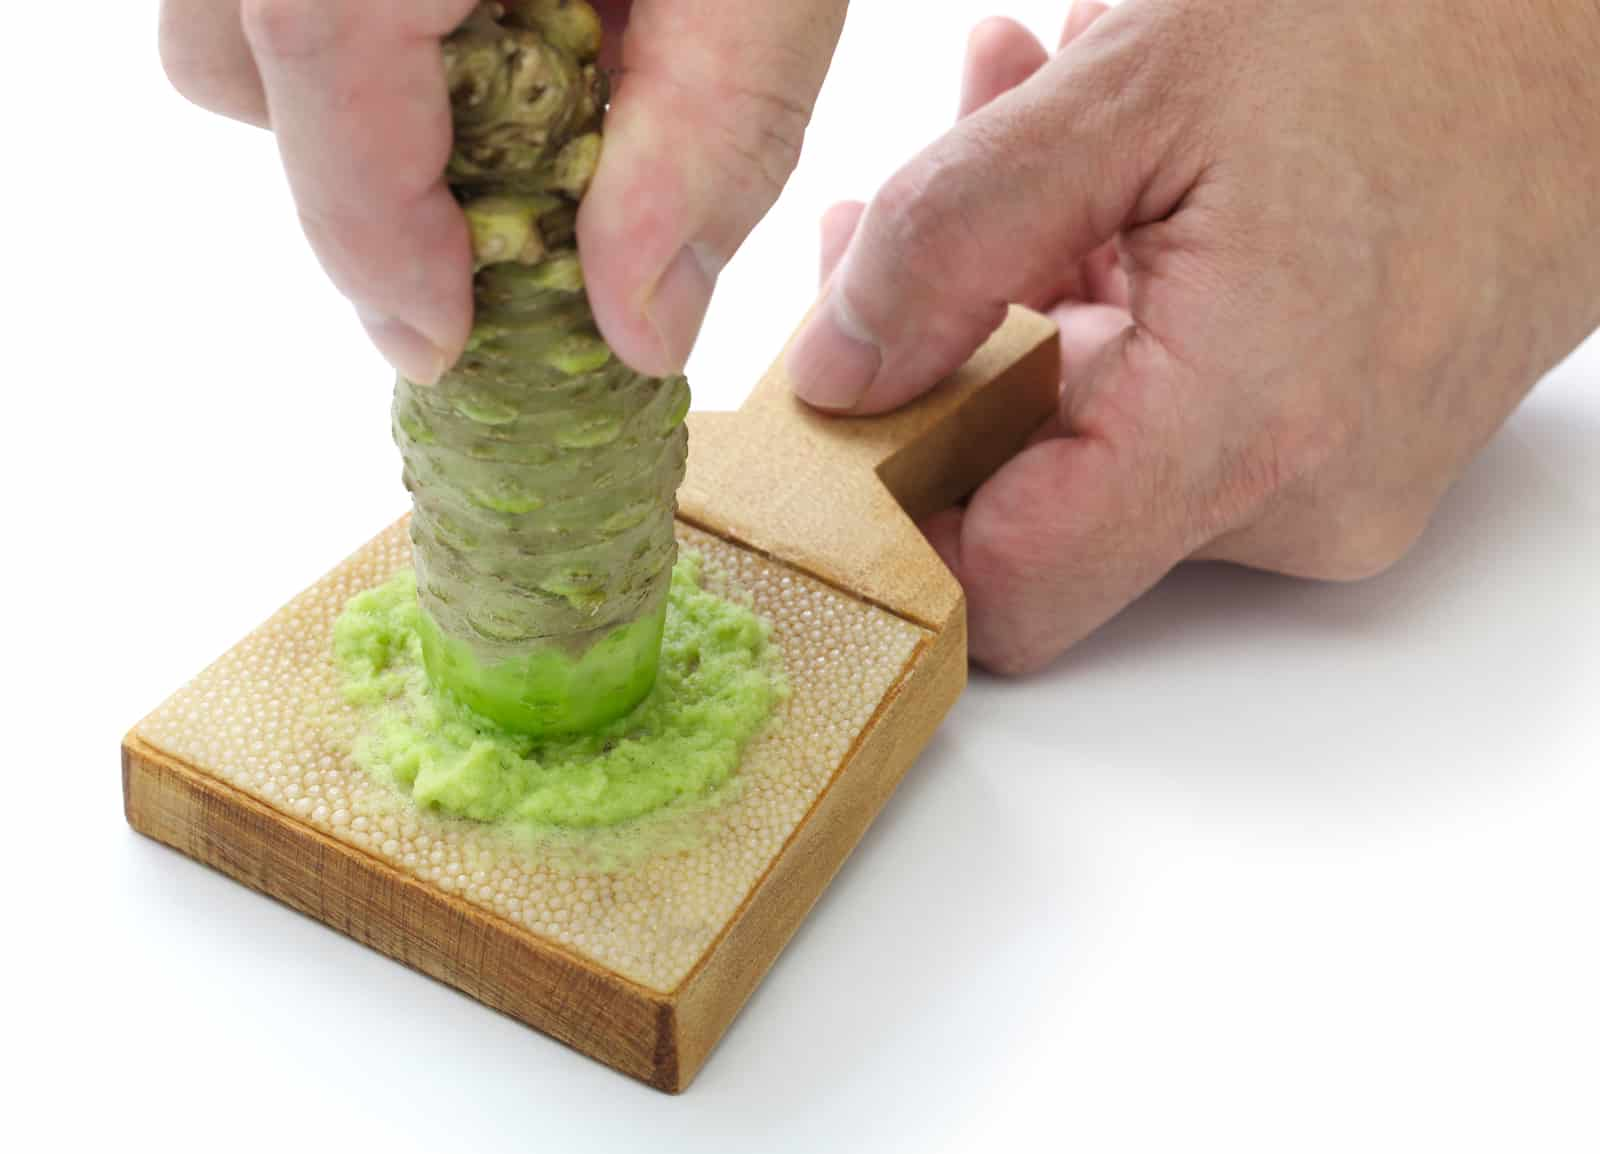 Cooking With Wasabi: The Dos And Don'ts